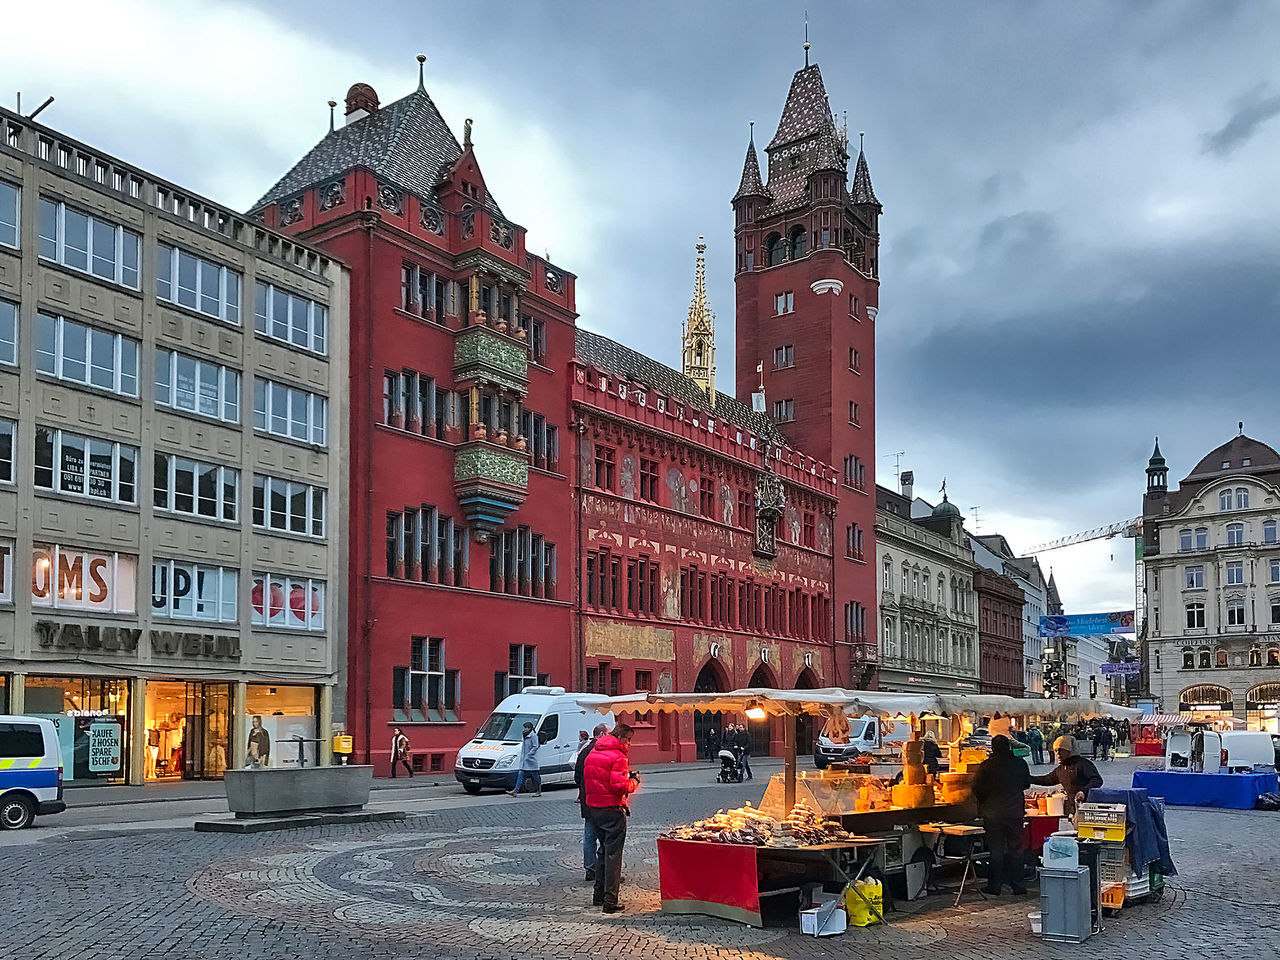 The market square and the town hall of Basel in Switzerland. Architecture Basel Booth Building Exterior Buildings Cars City Clouds Day Illumination Market Square Outdoors People Red Sky Switzerland Town Hall